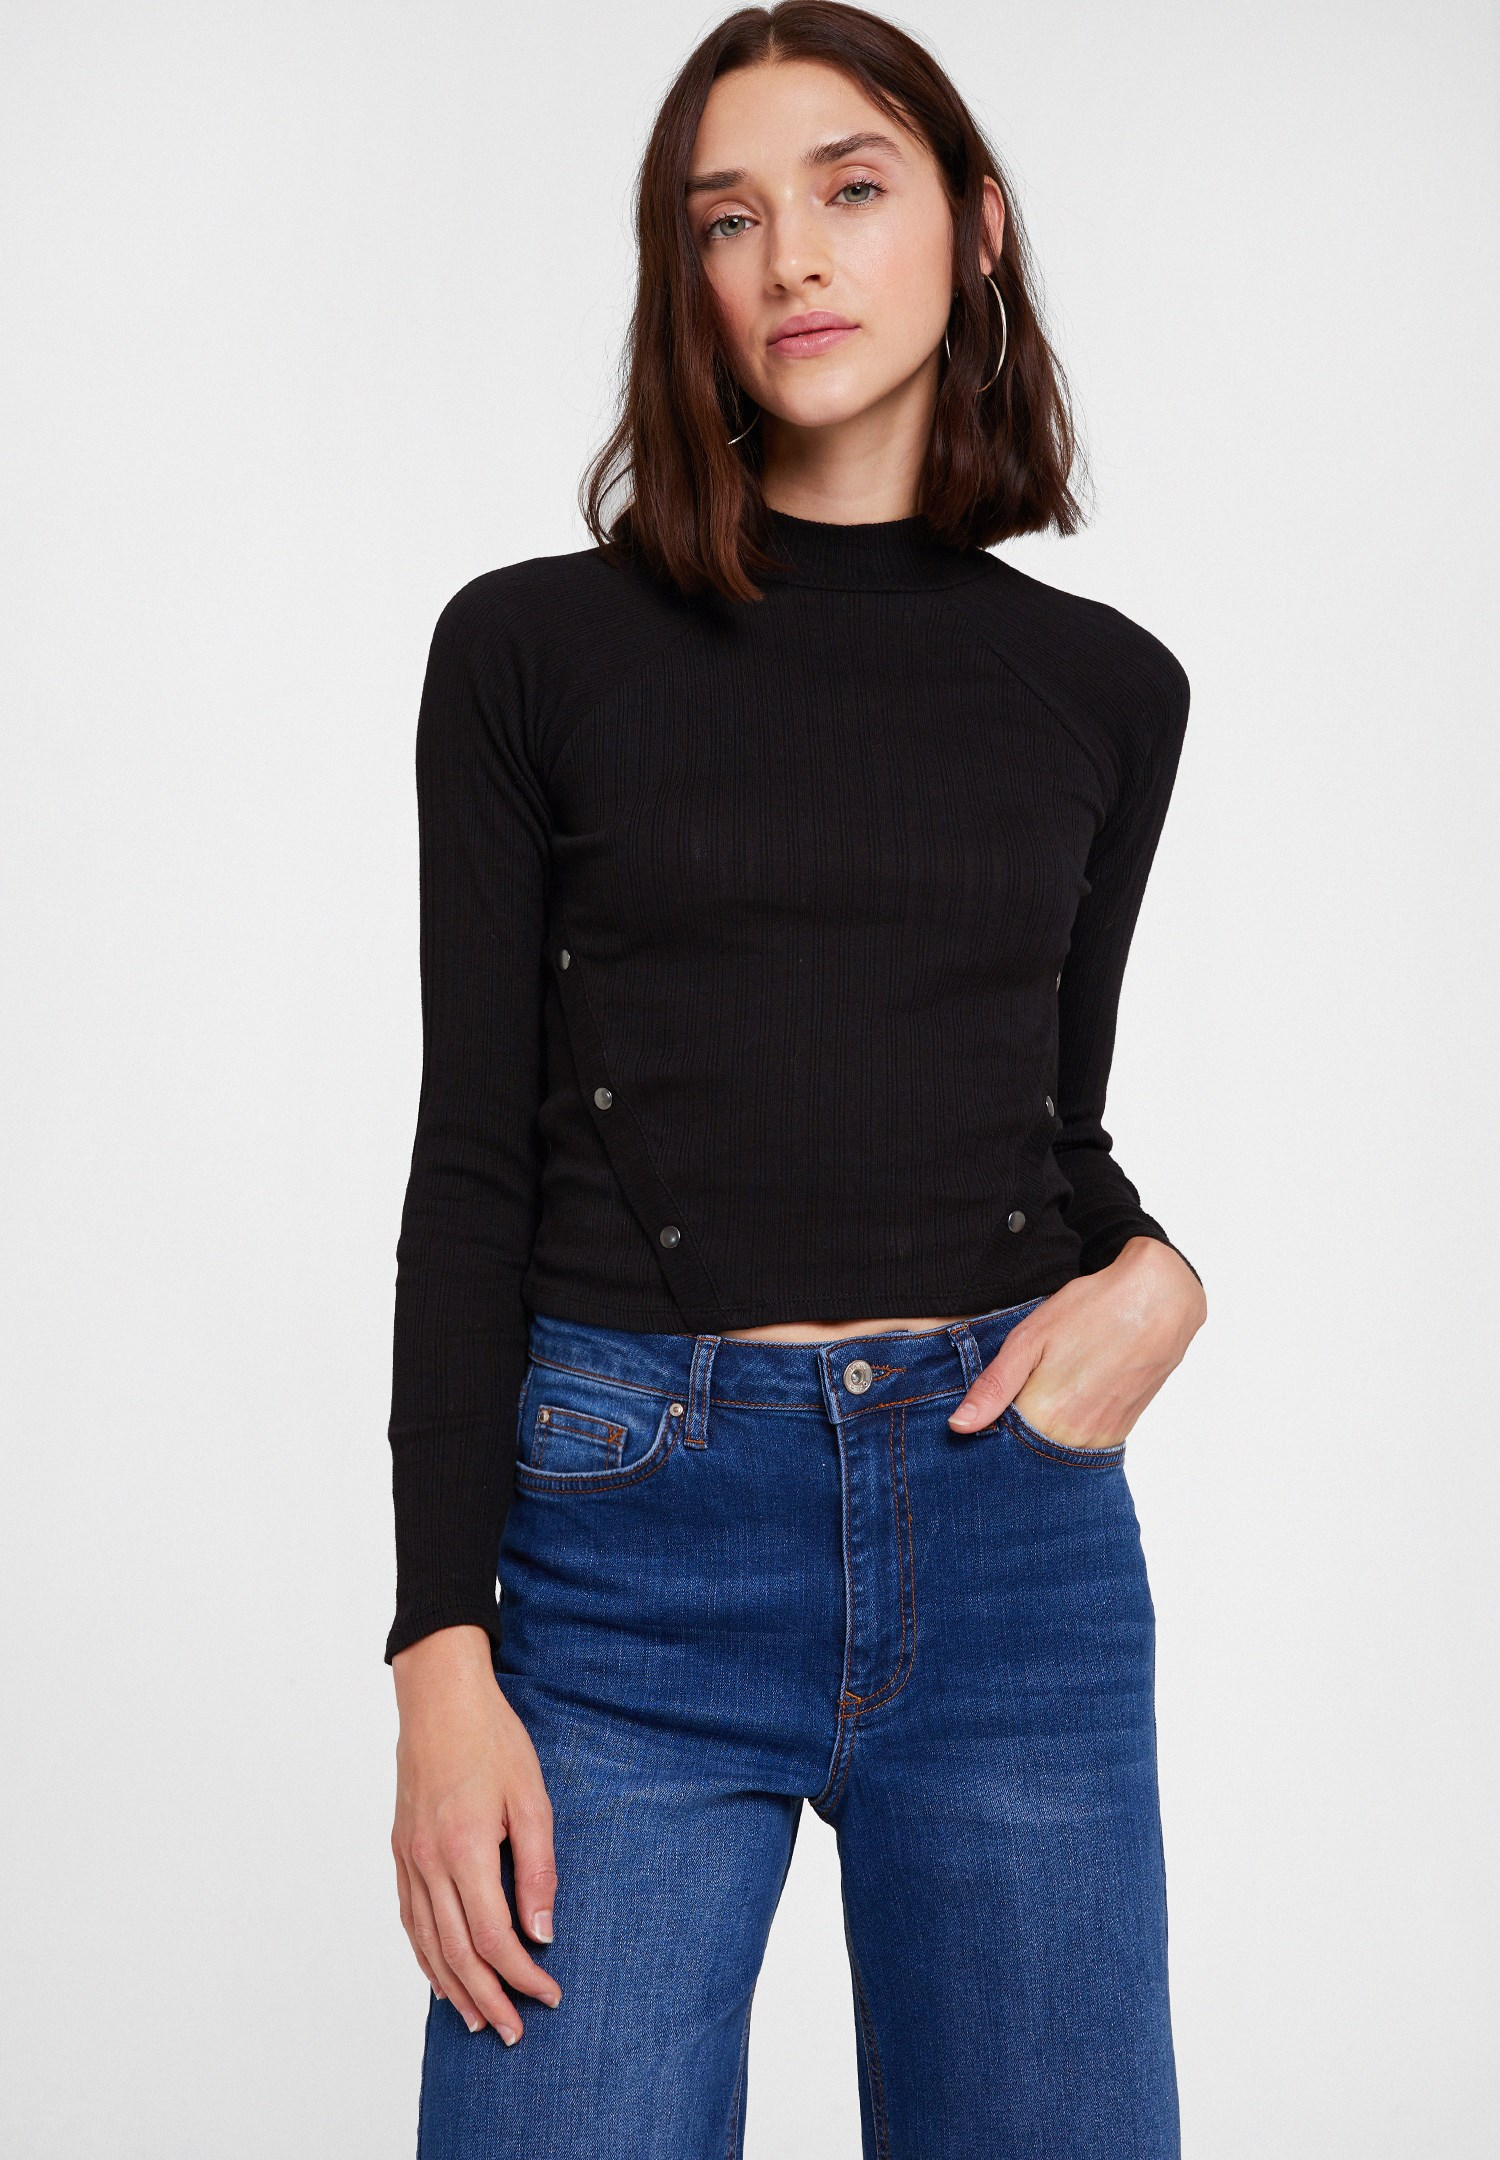 Women Black Long Sleeve Blouse with Neck Details